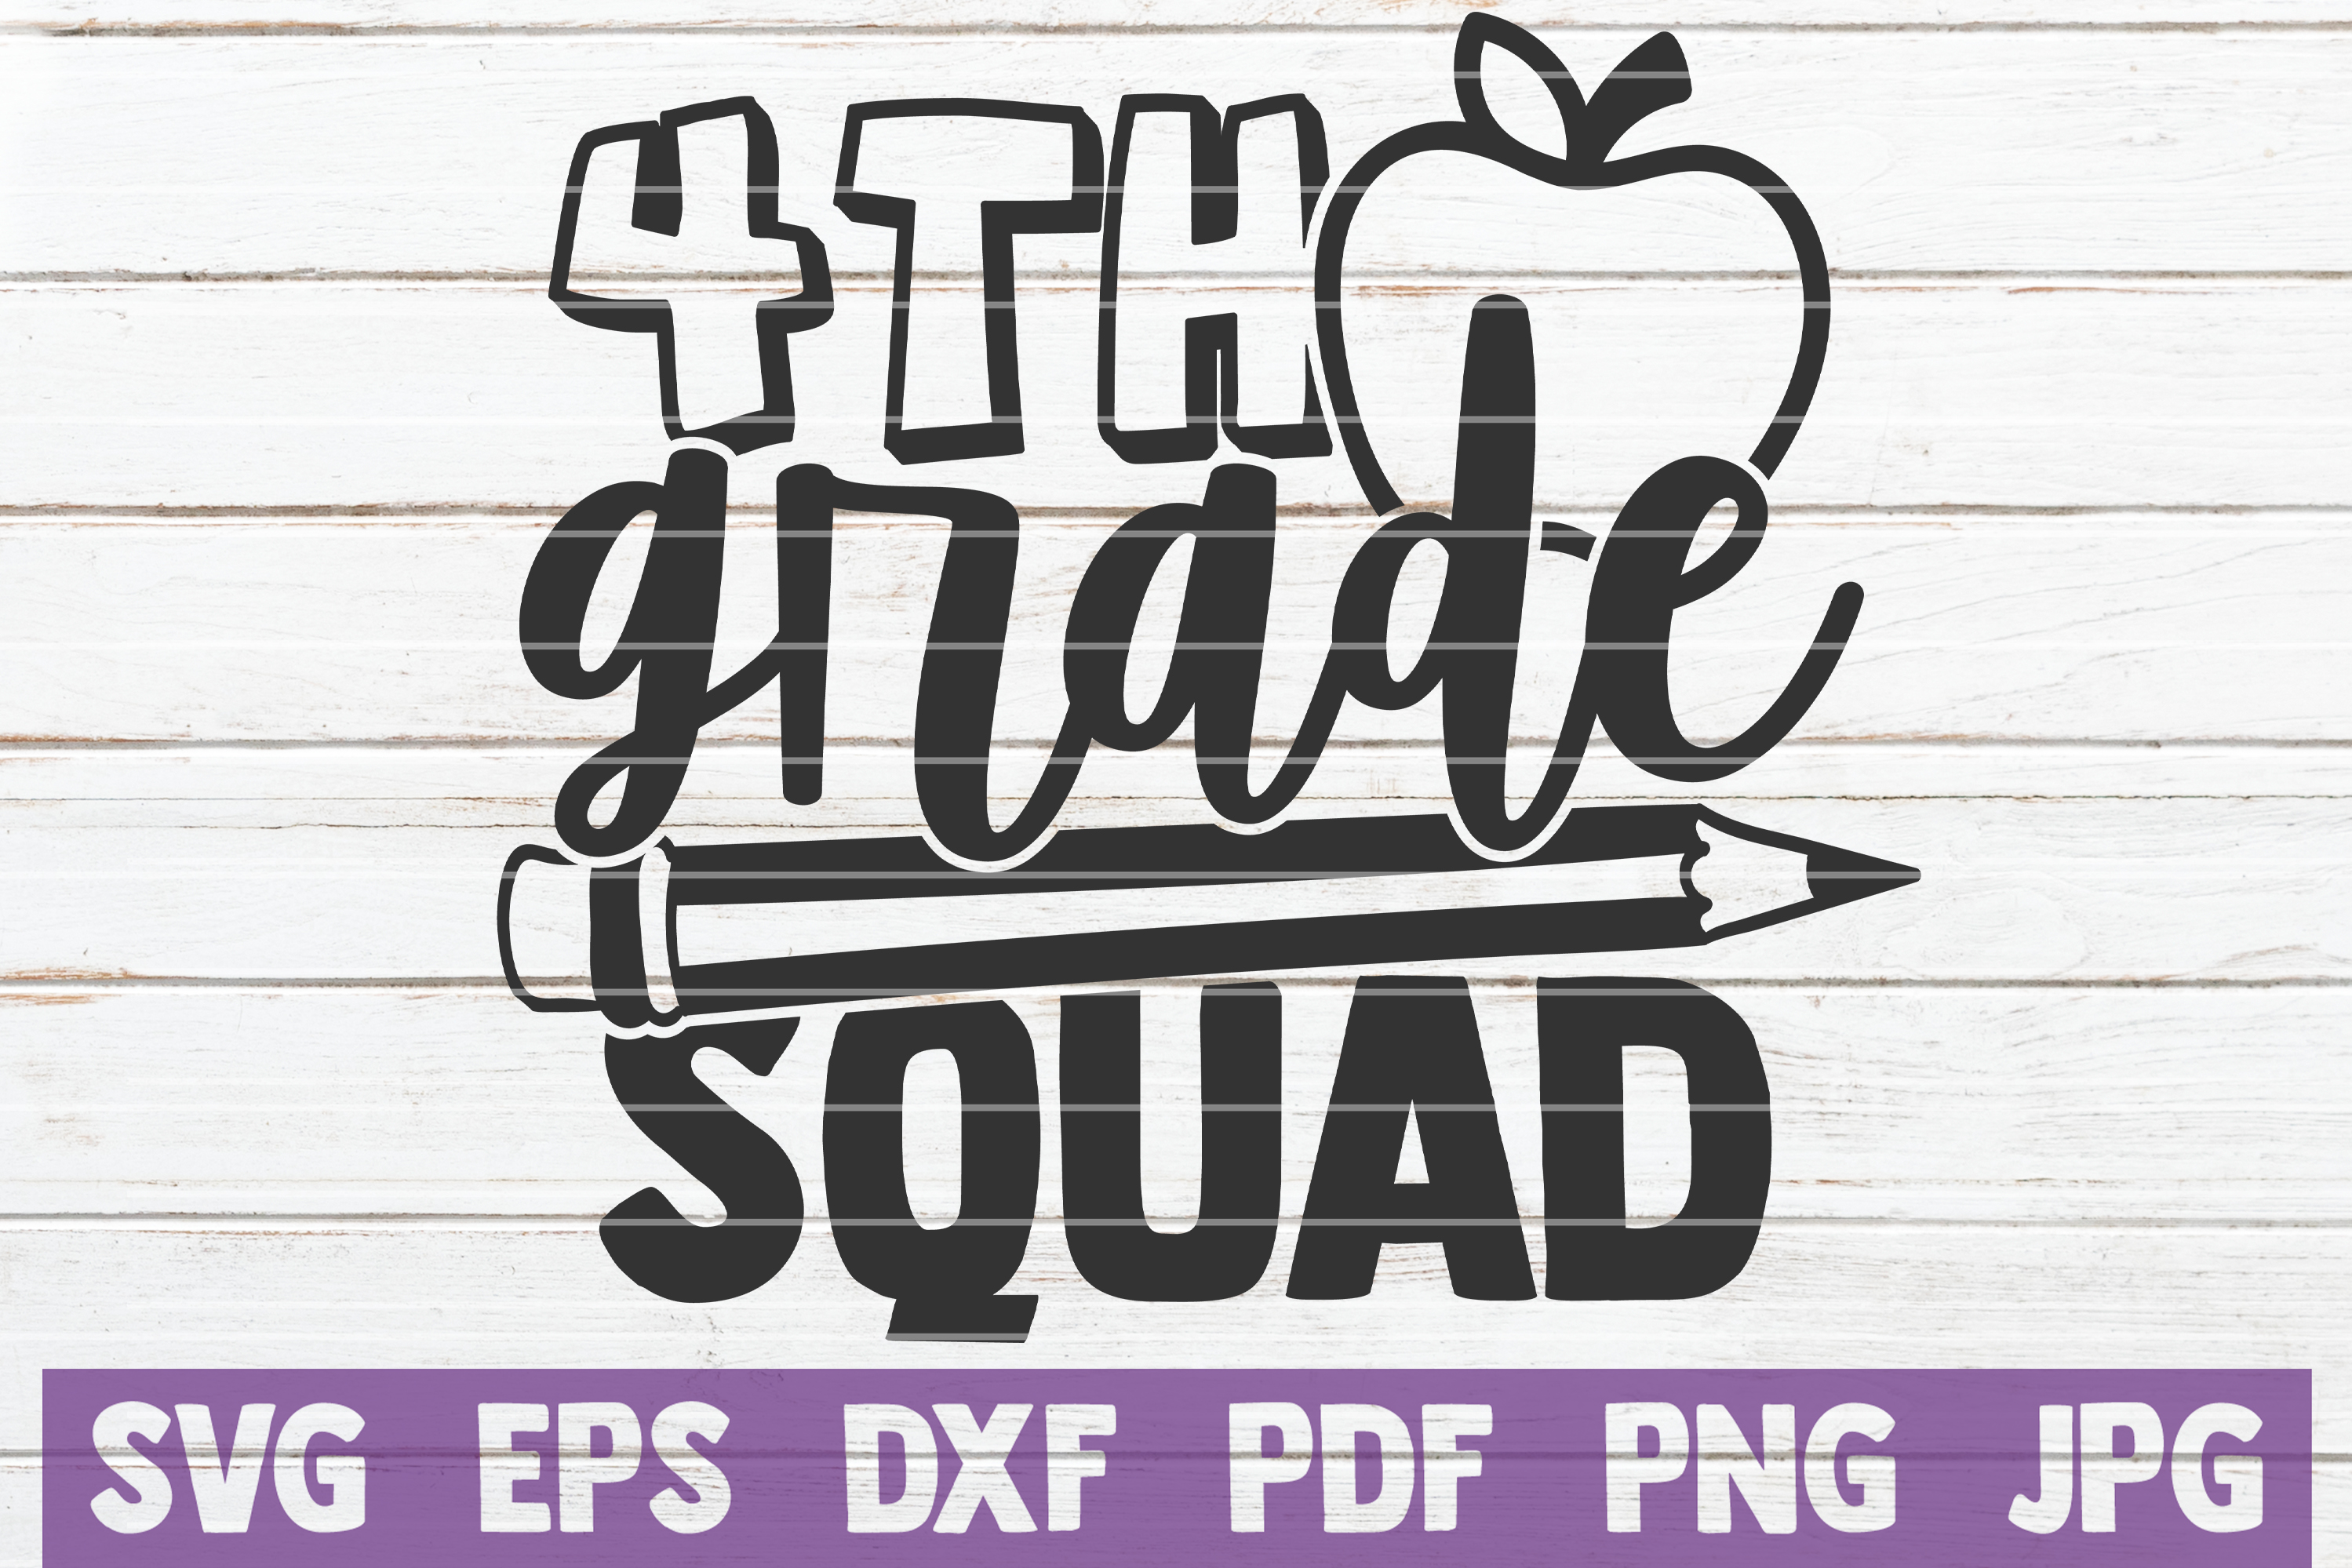 Download Free 4th Grade Squad Graphic By Mintymarshmallows Creative Fabrica for Cricut Explore, Silhouette and other cutting machines.